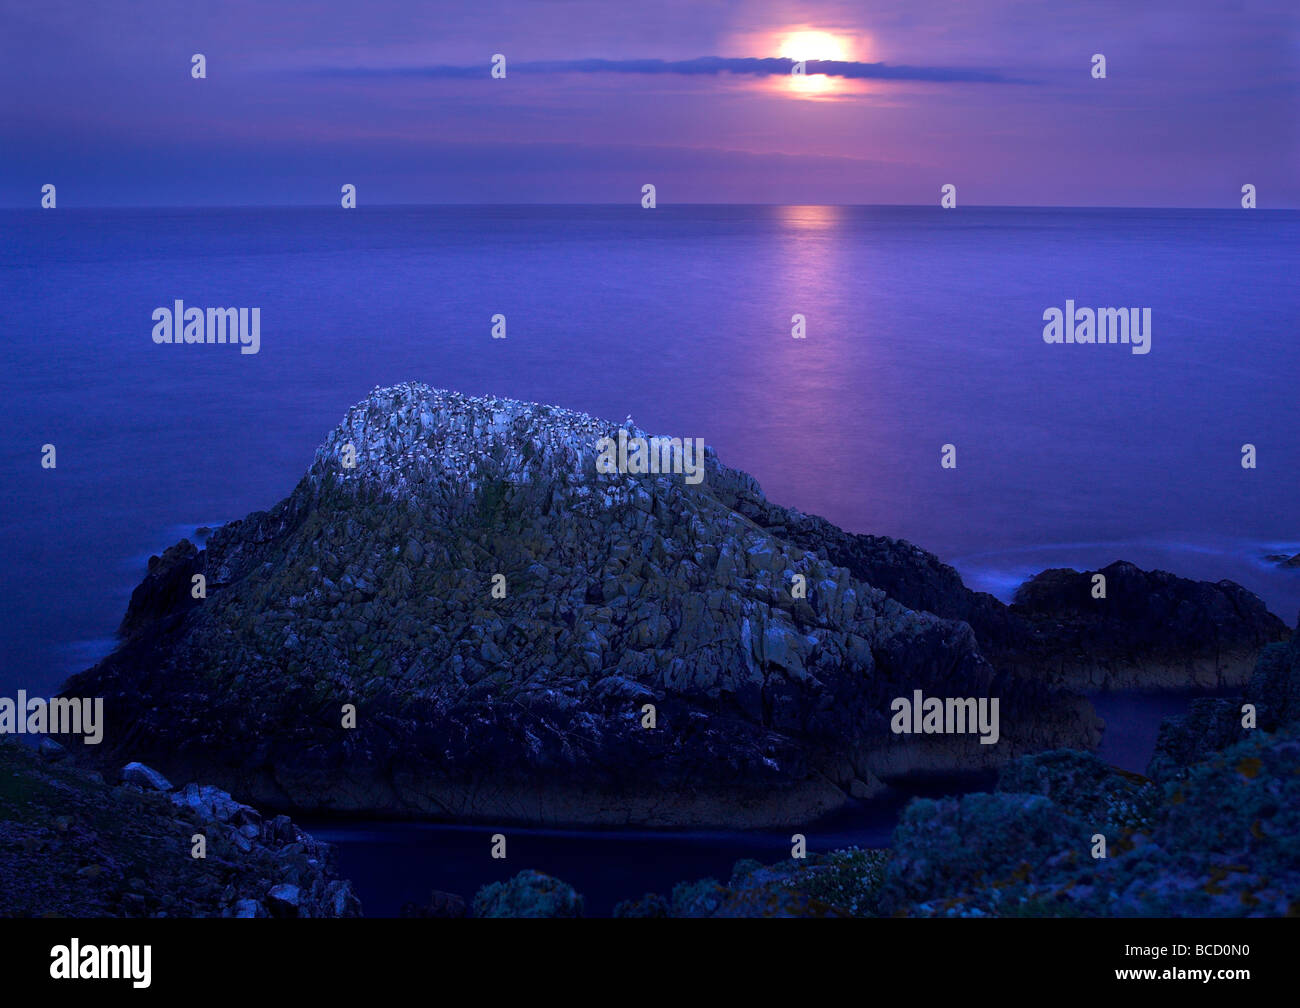 Gannet (Sula bassana) colony at night with the full moon rising over the sea. - Stock Image